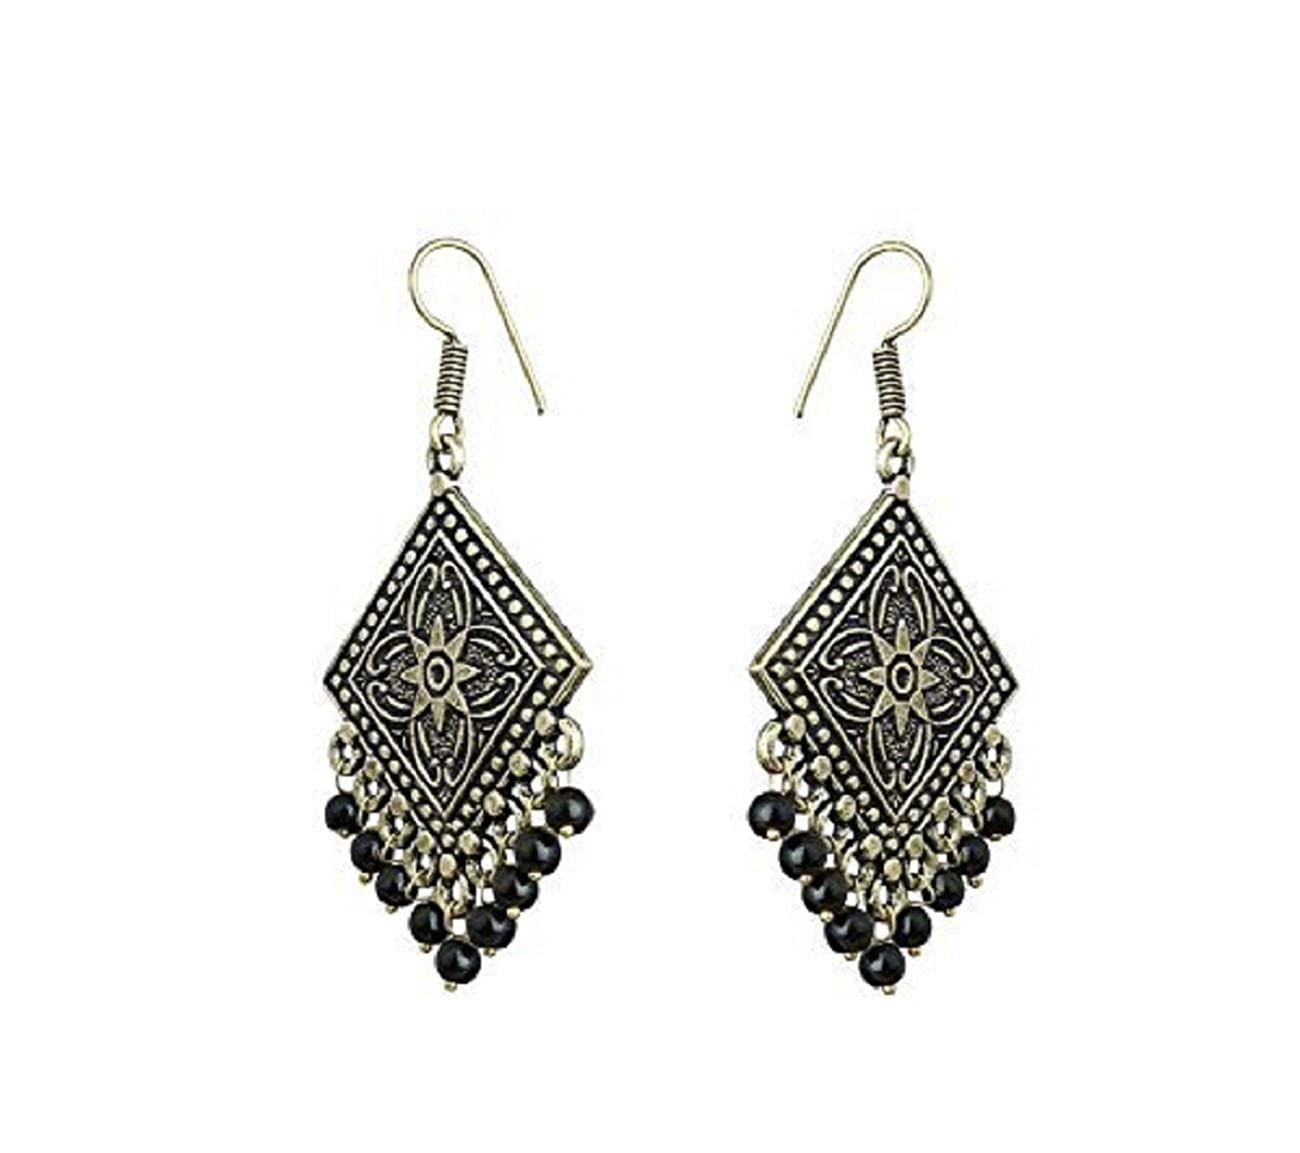 Subharpit Black Beads Traditional Indian Silver Tone Dangle Earring Jewelry For Women and Girls